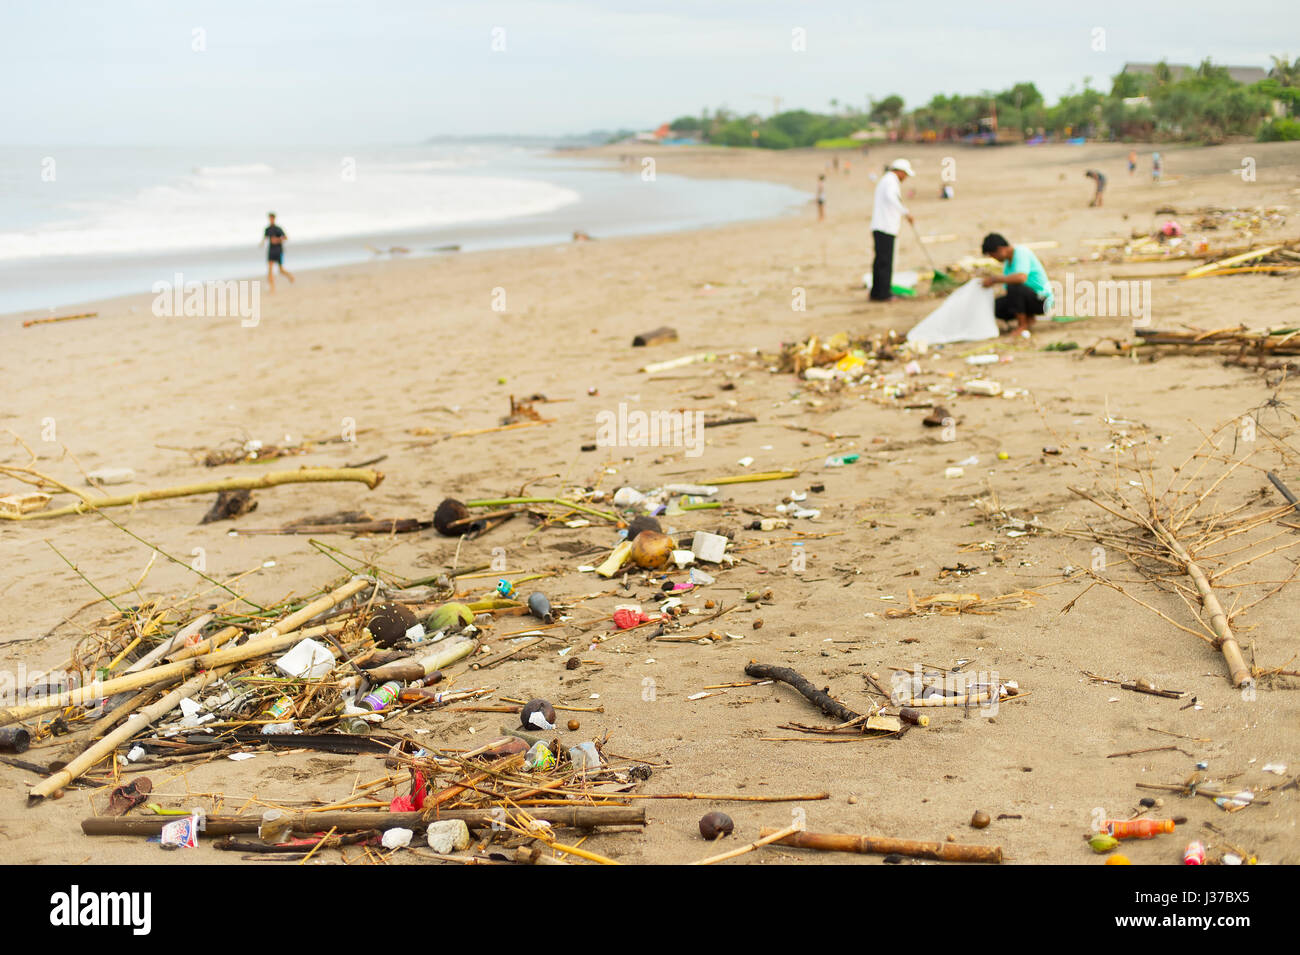 Lots of garbage on the ocean beach. Bali island, Indonesia - Stock Image